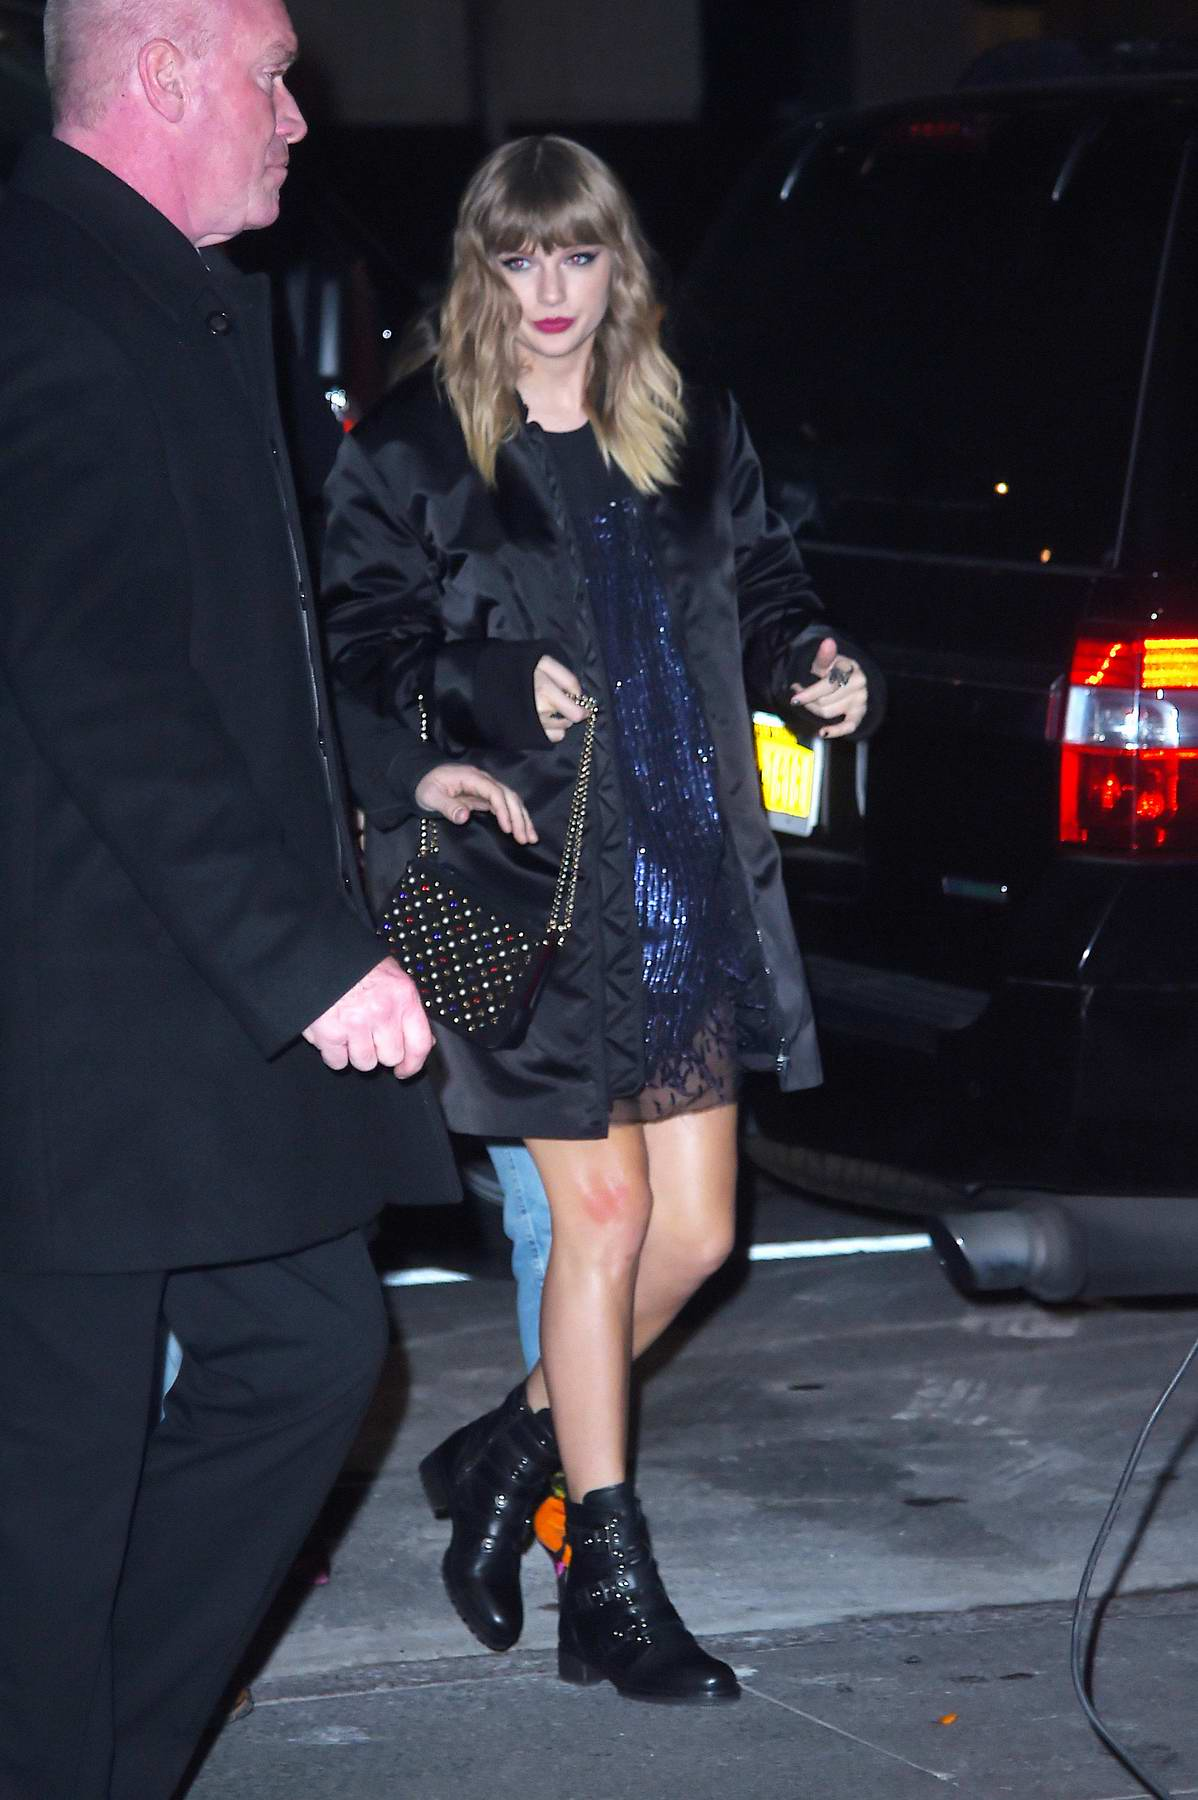 Taylor Swift arrives at the SNL after-party in Manhattan, New York City